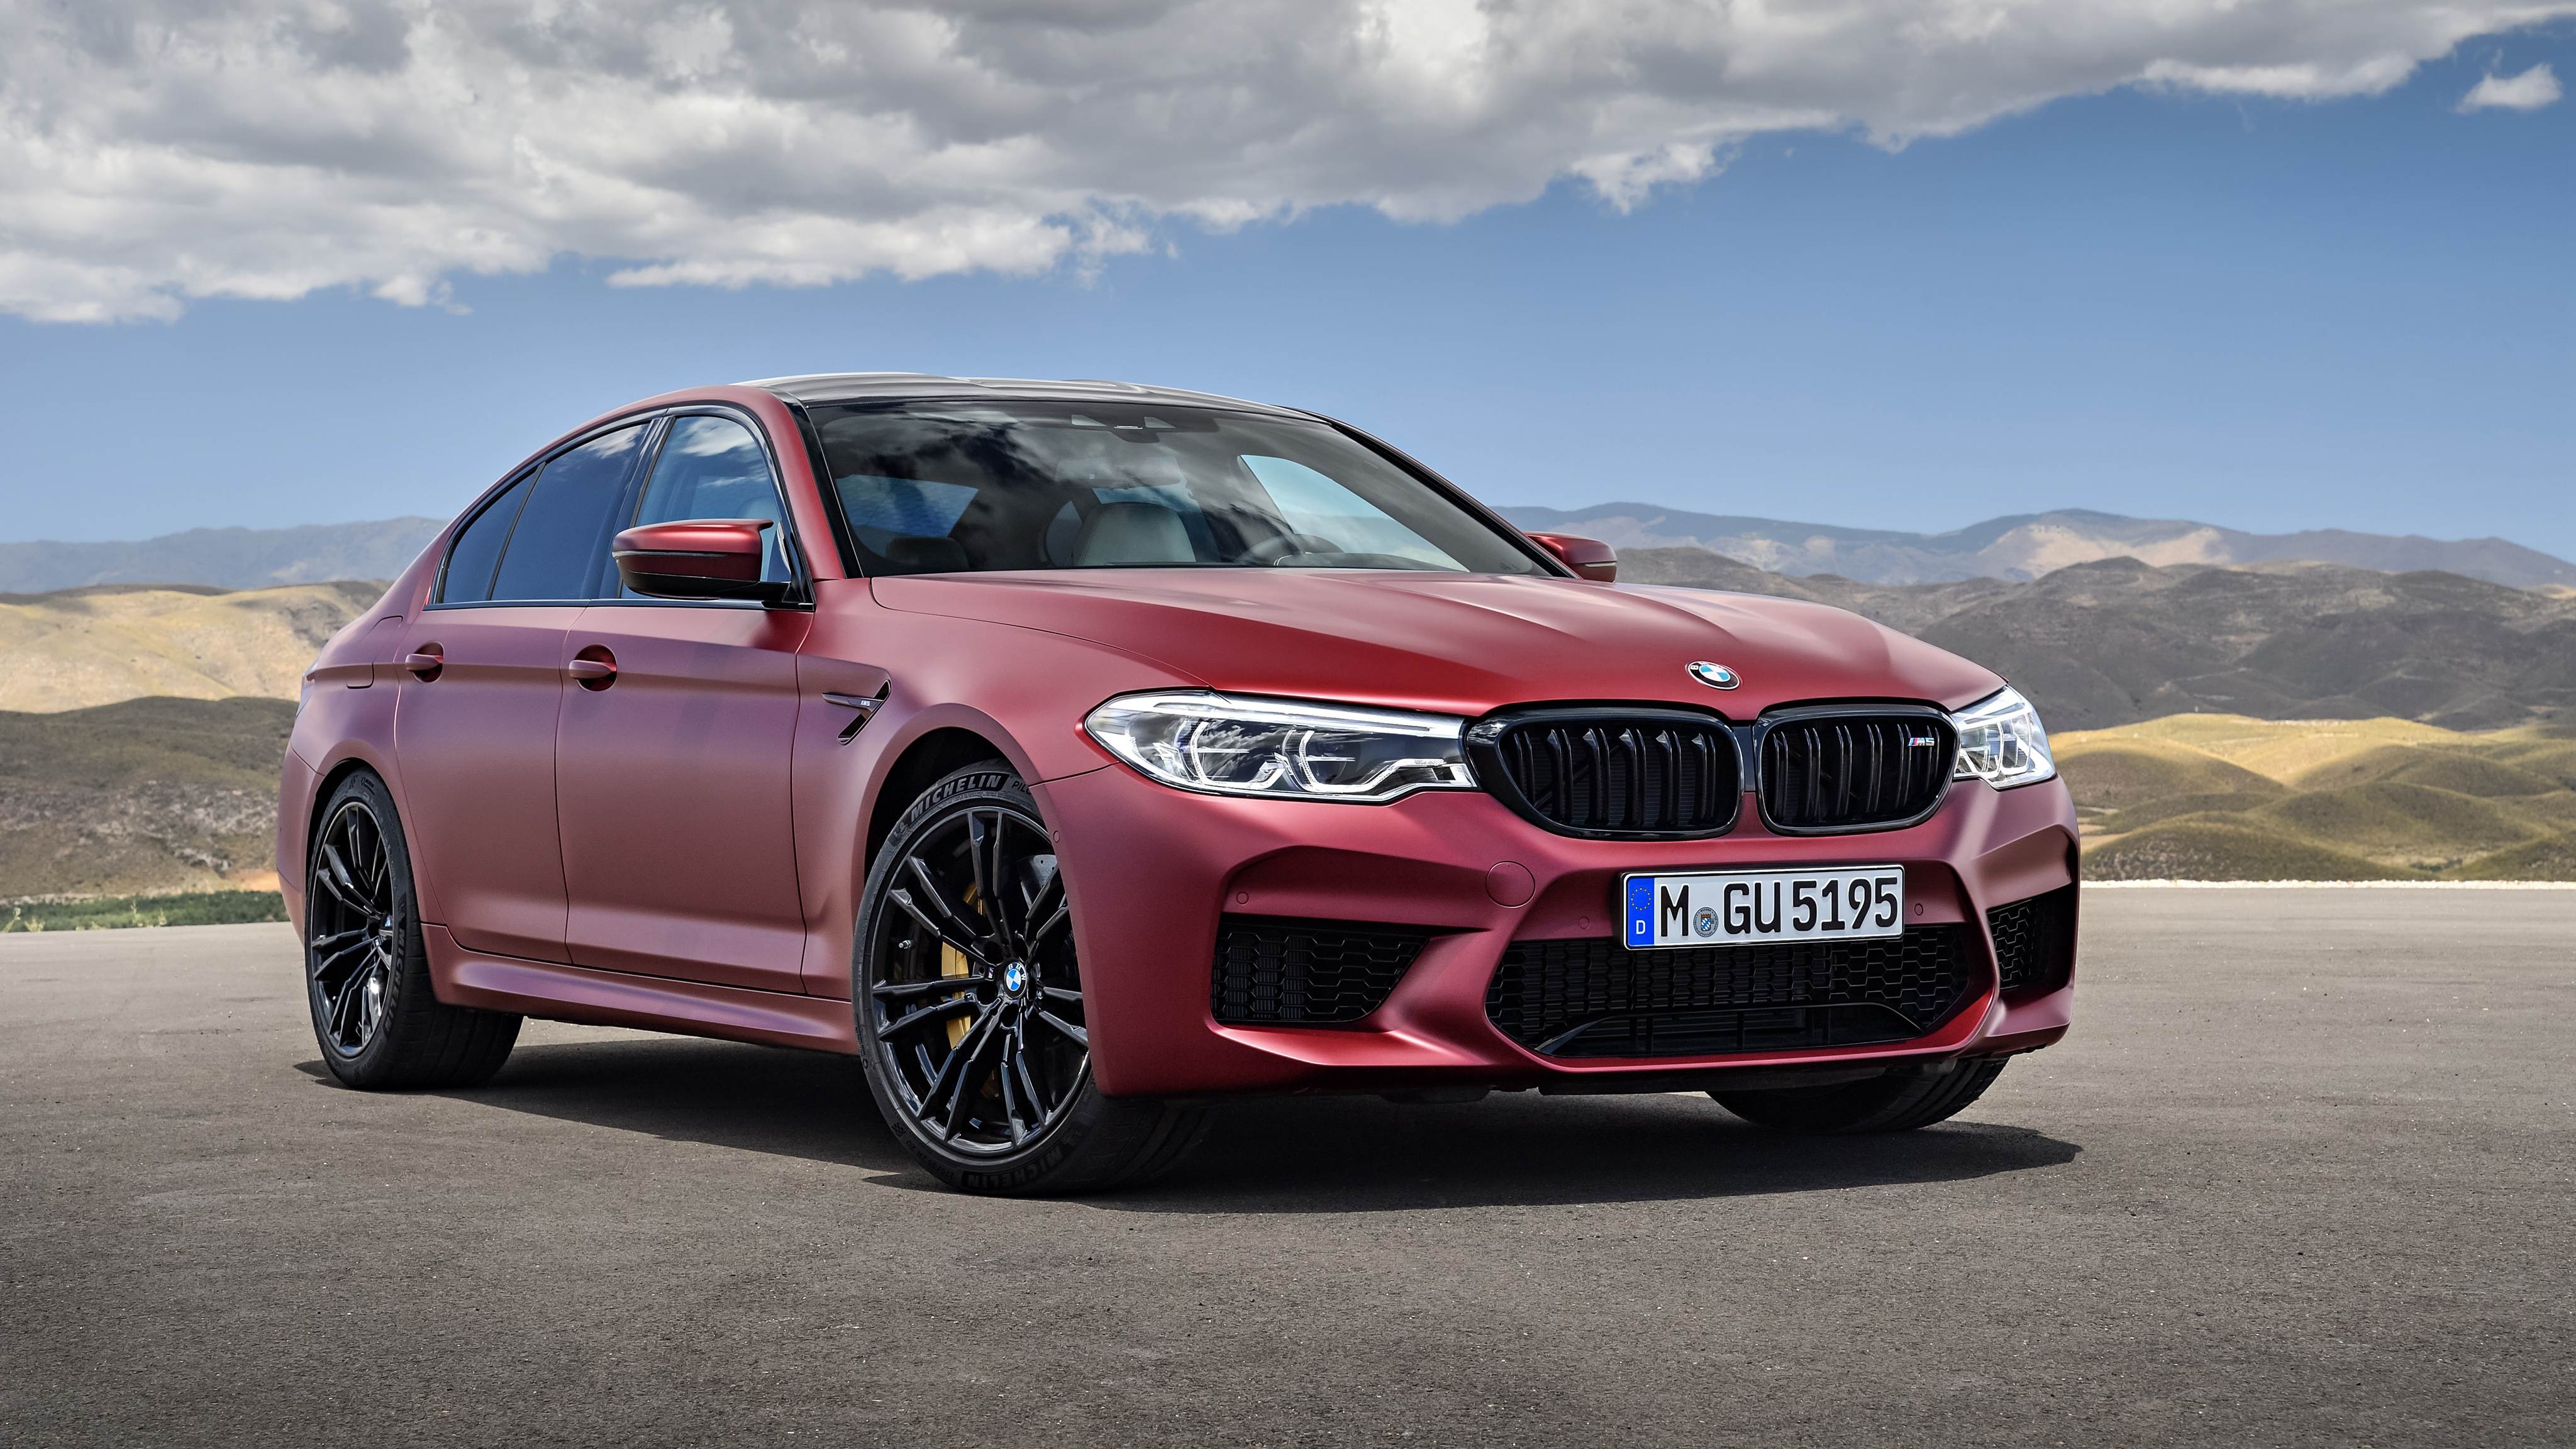 2018 BMW M5 First Edition Wallpaper HD Car Wallpapers ID 8274 4096x2304